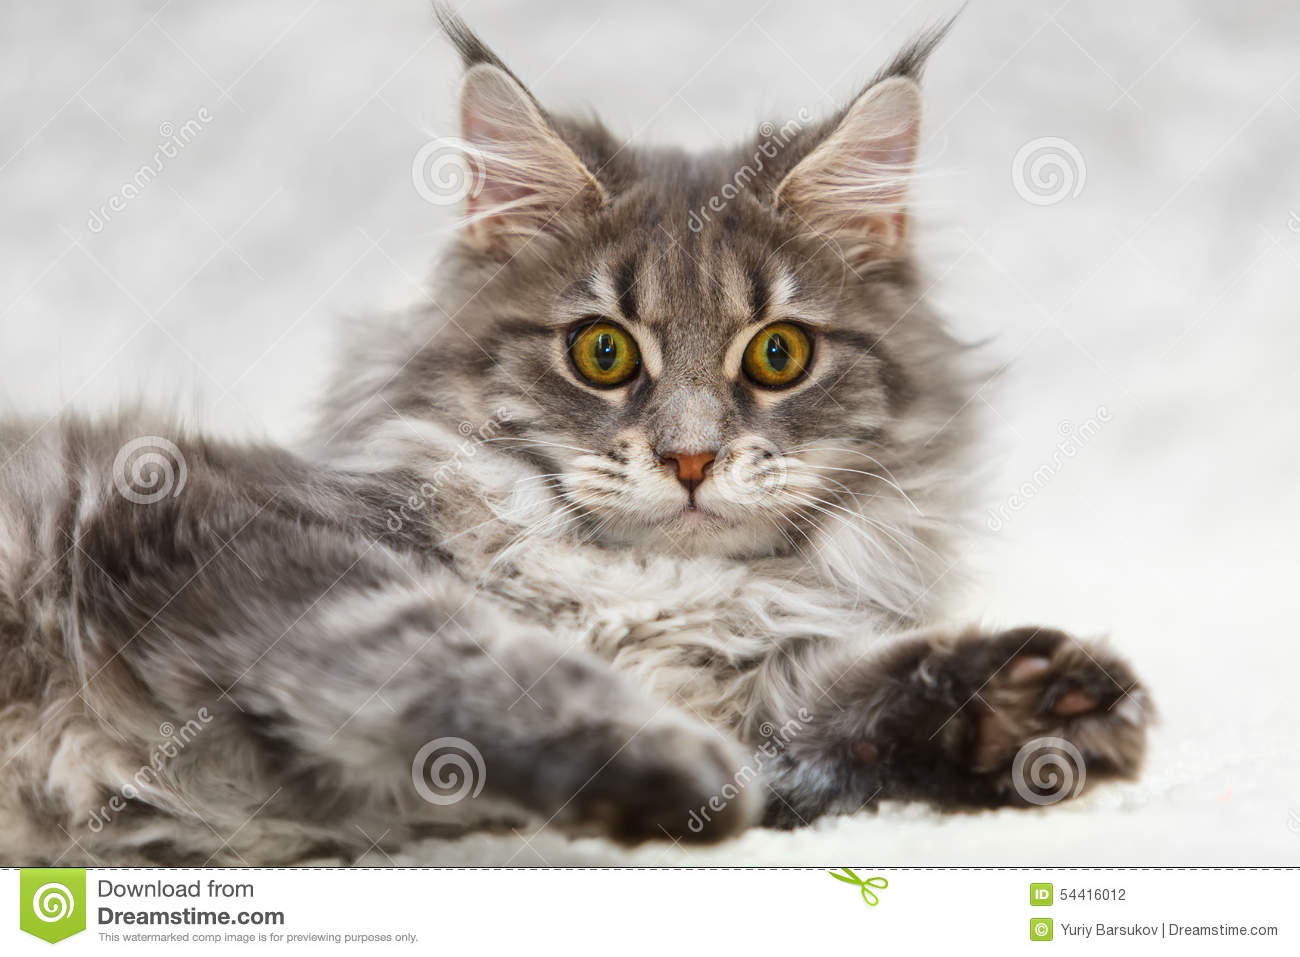 Gray Maine Coon Cat With Yellow Eyes Posing On White